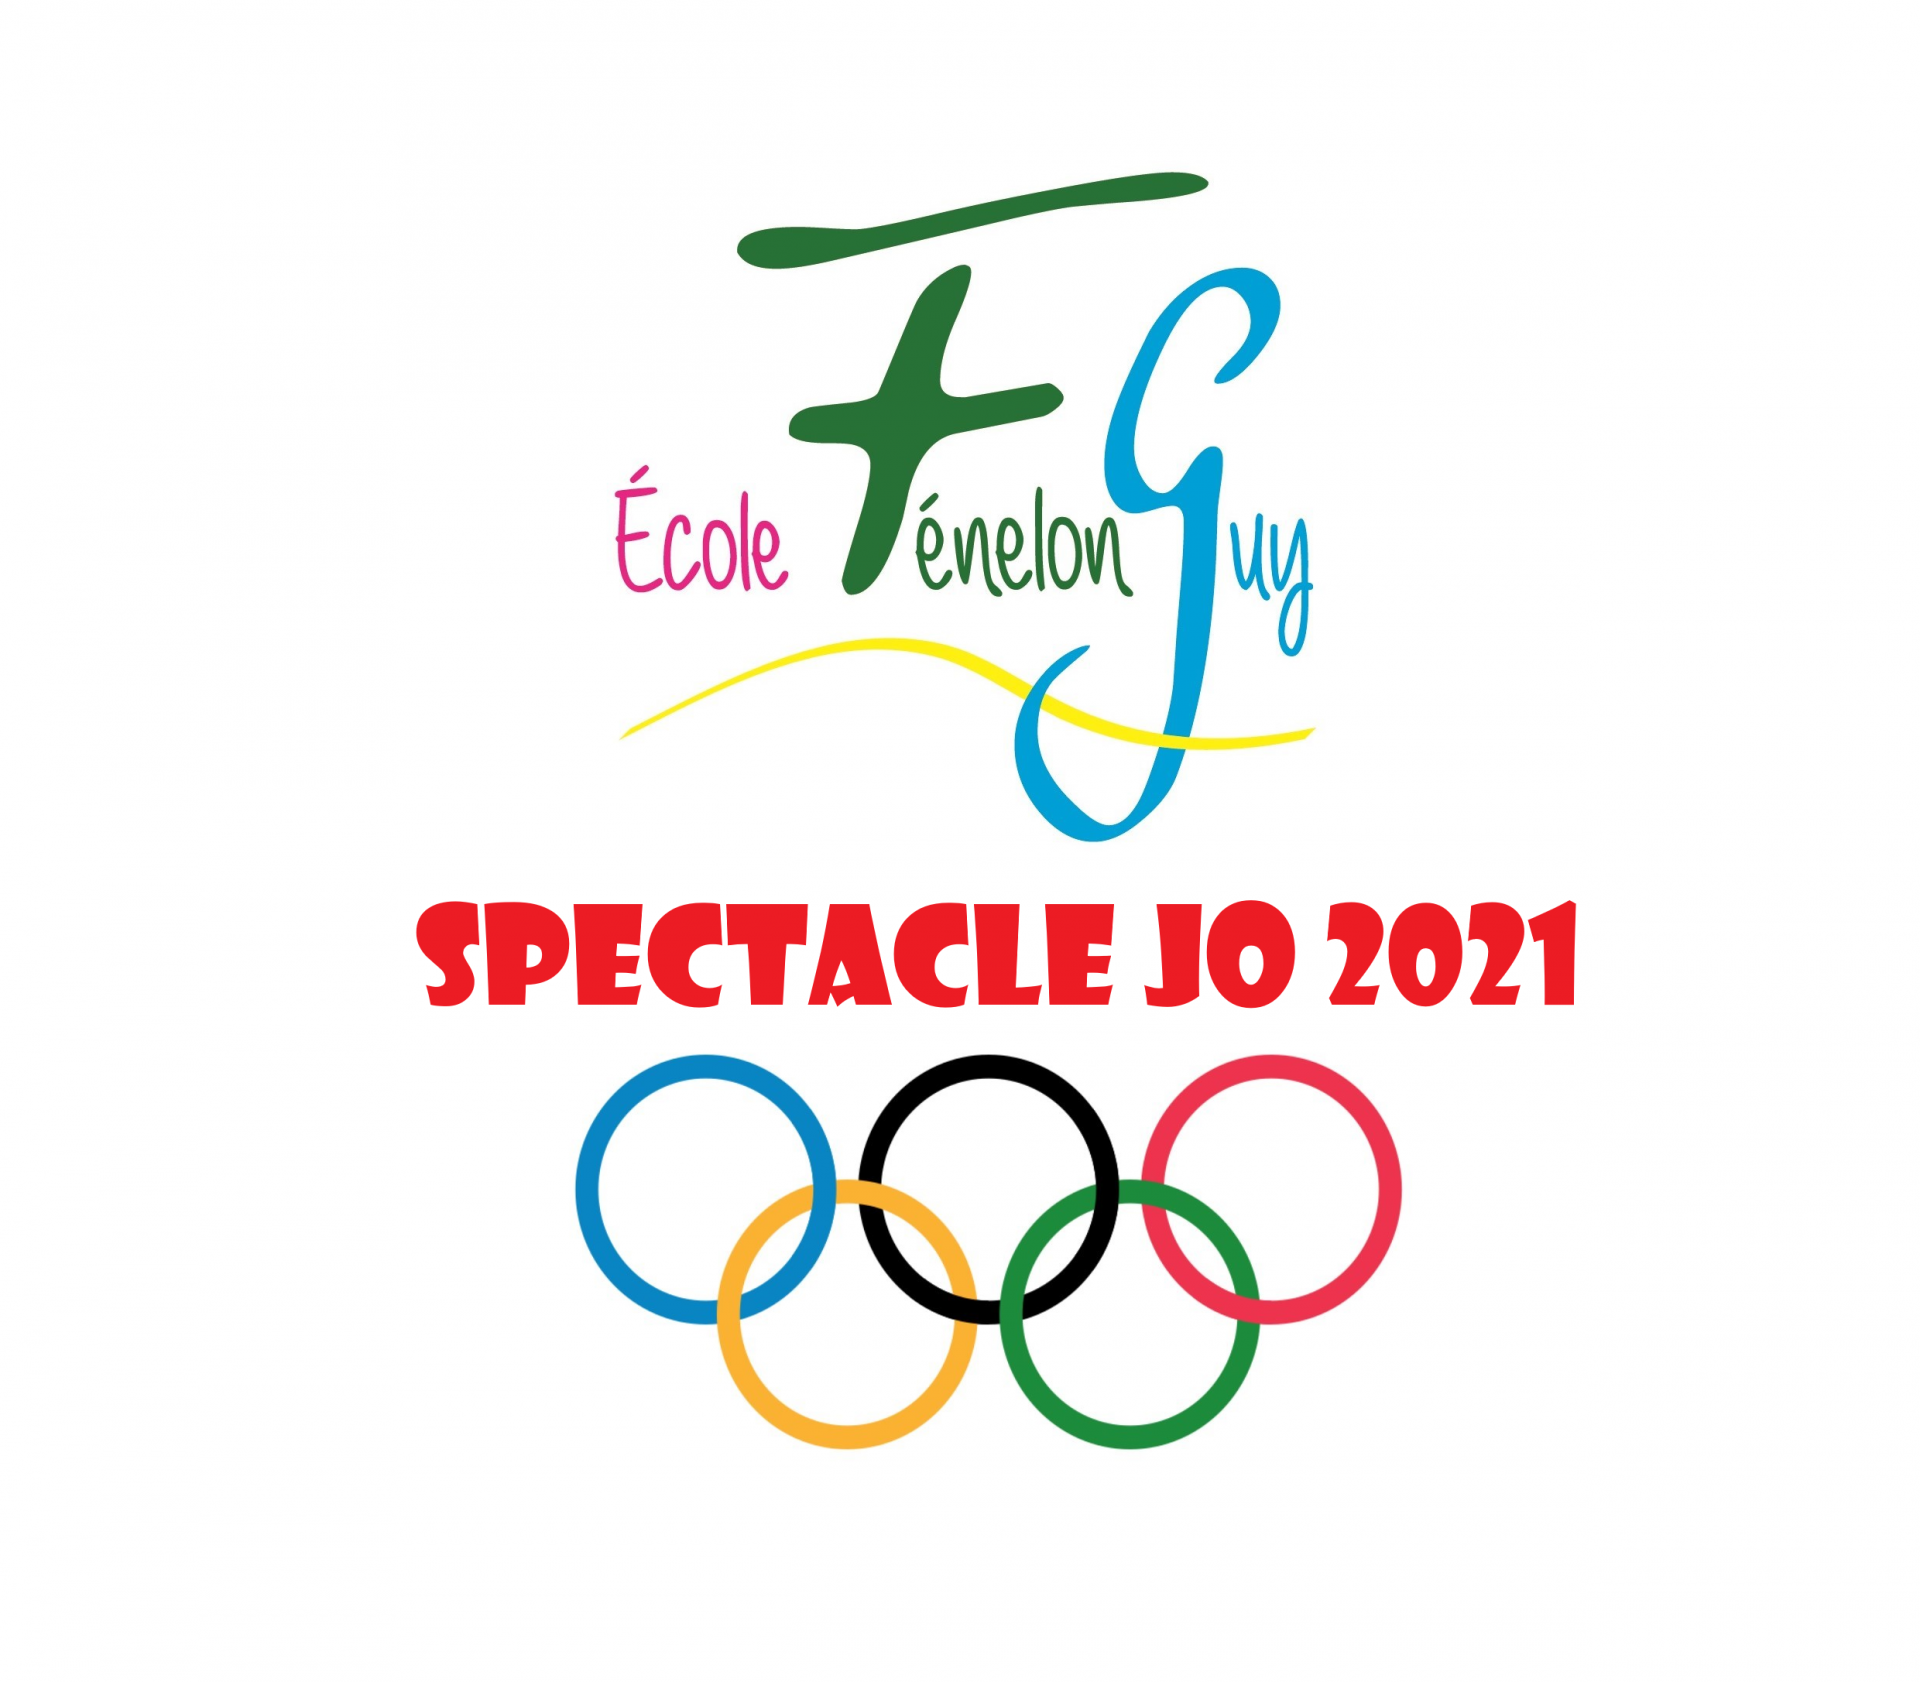 Spectacle jo